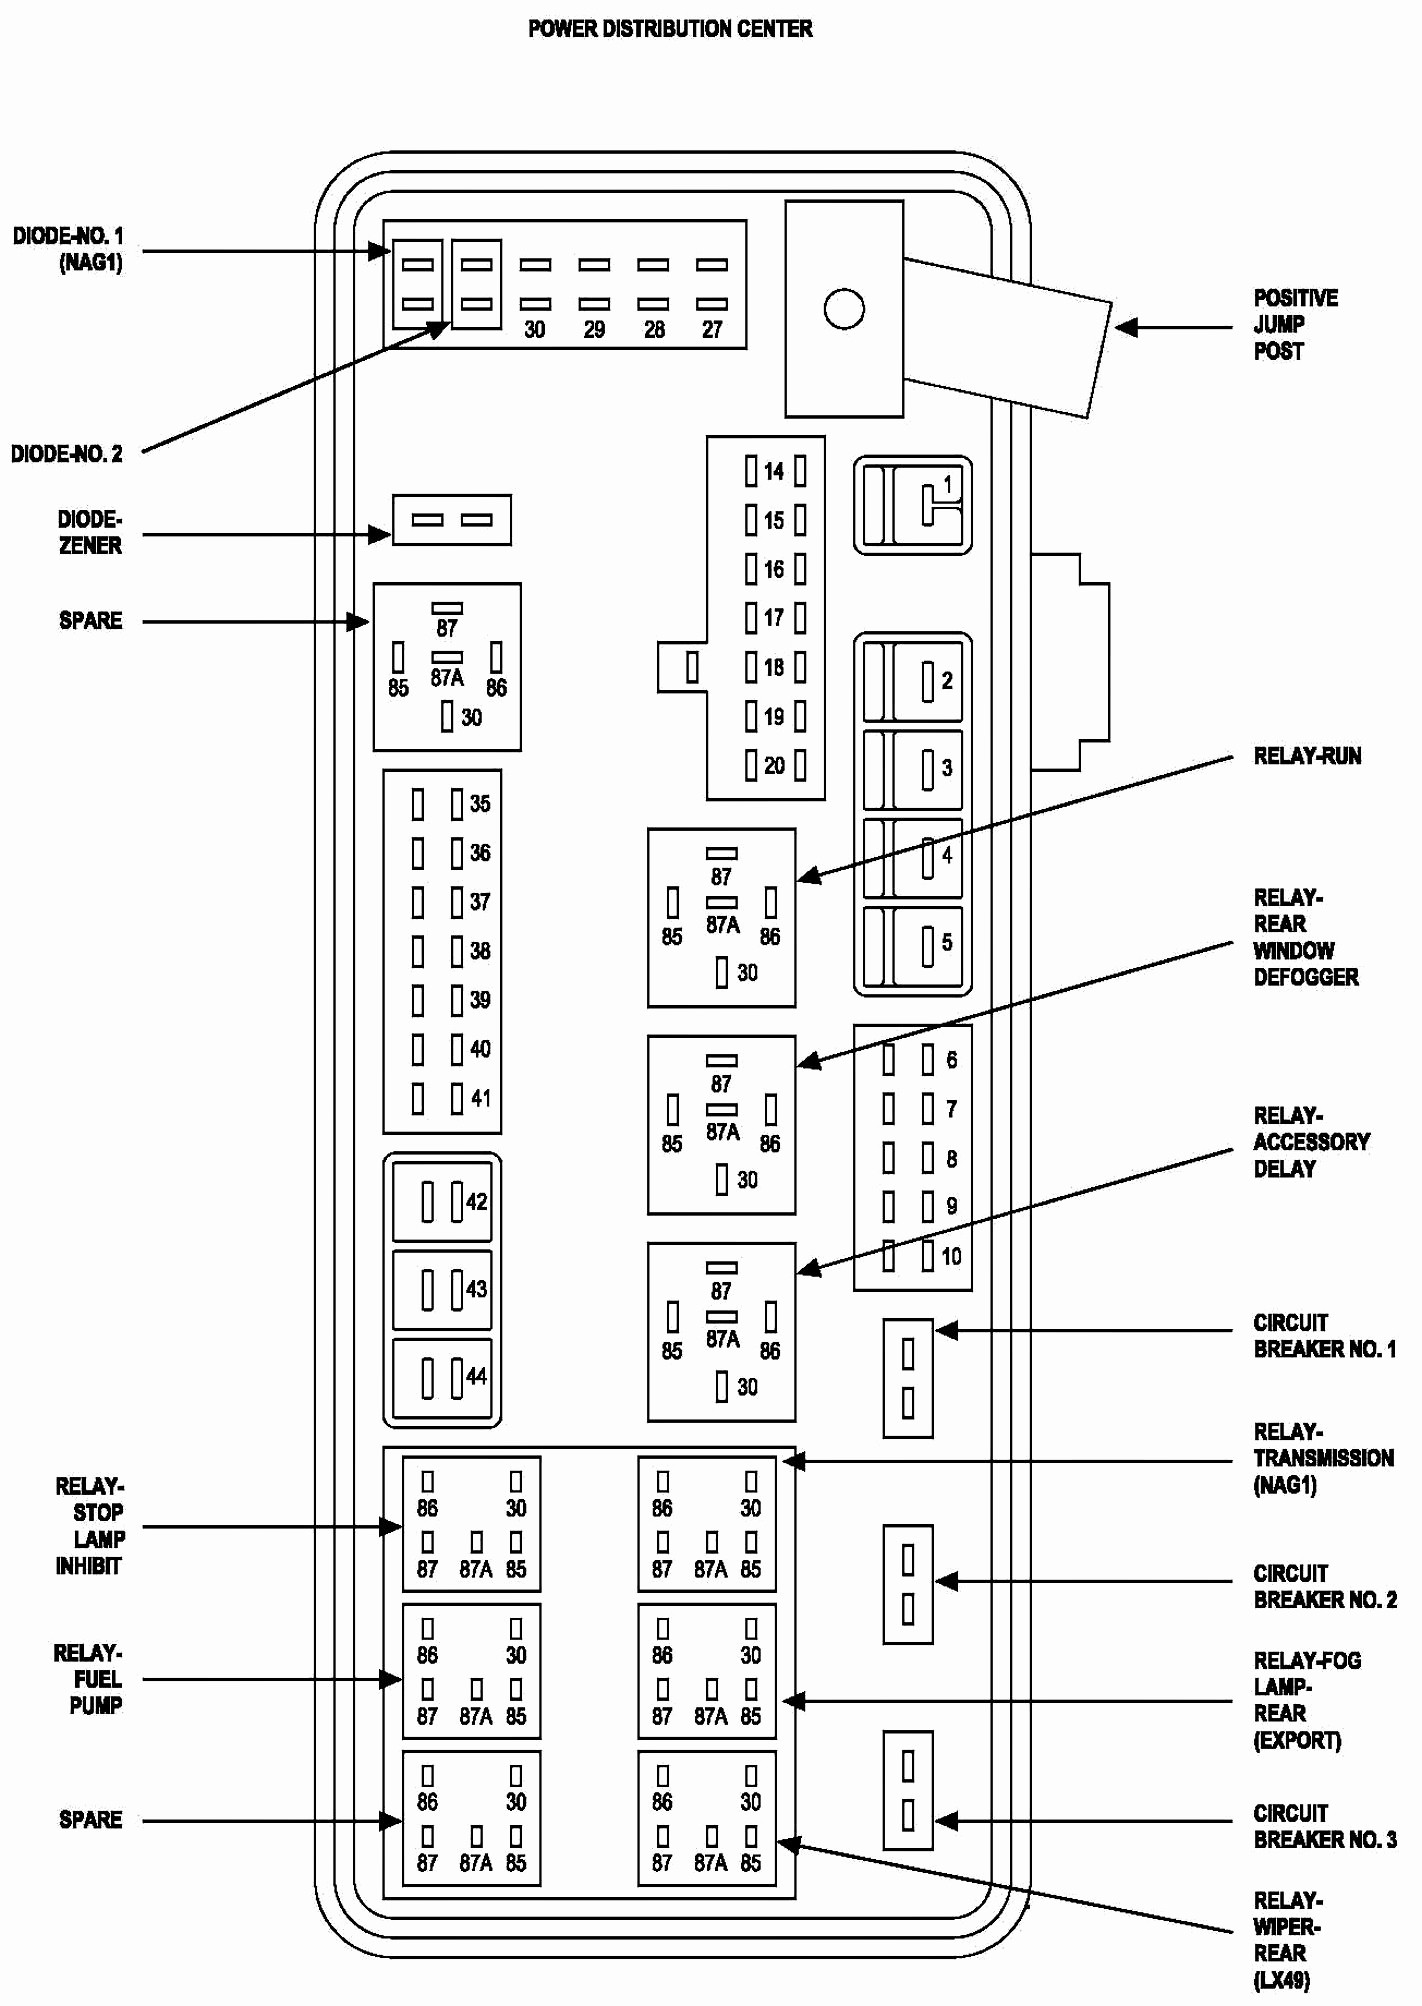 1999 Dodge Ram 1500 Brake Light Diagram Fuse Box For 1996 Neon 2014 Wiring Data Of